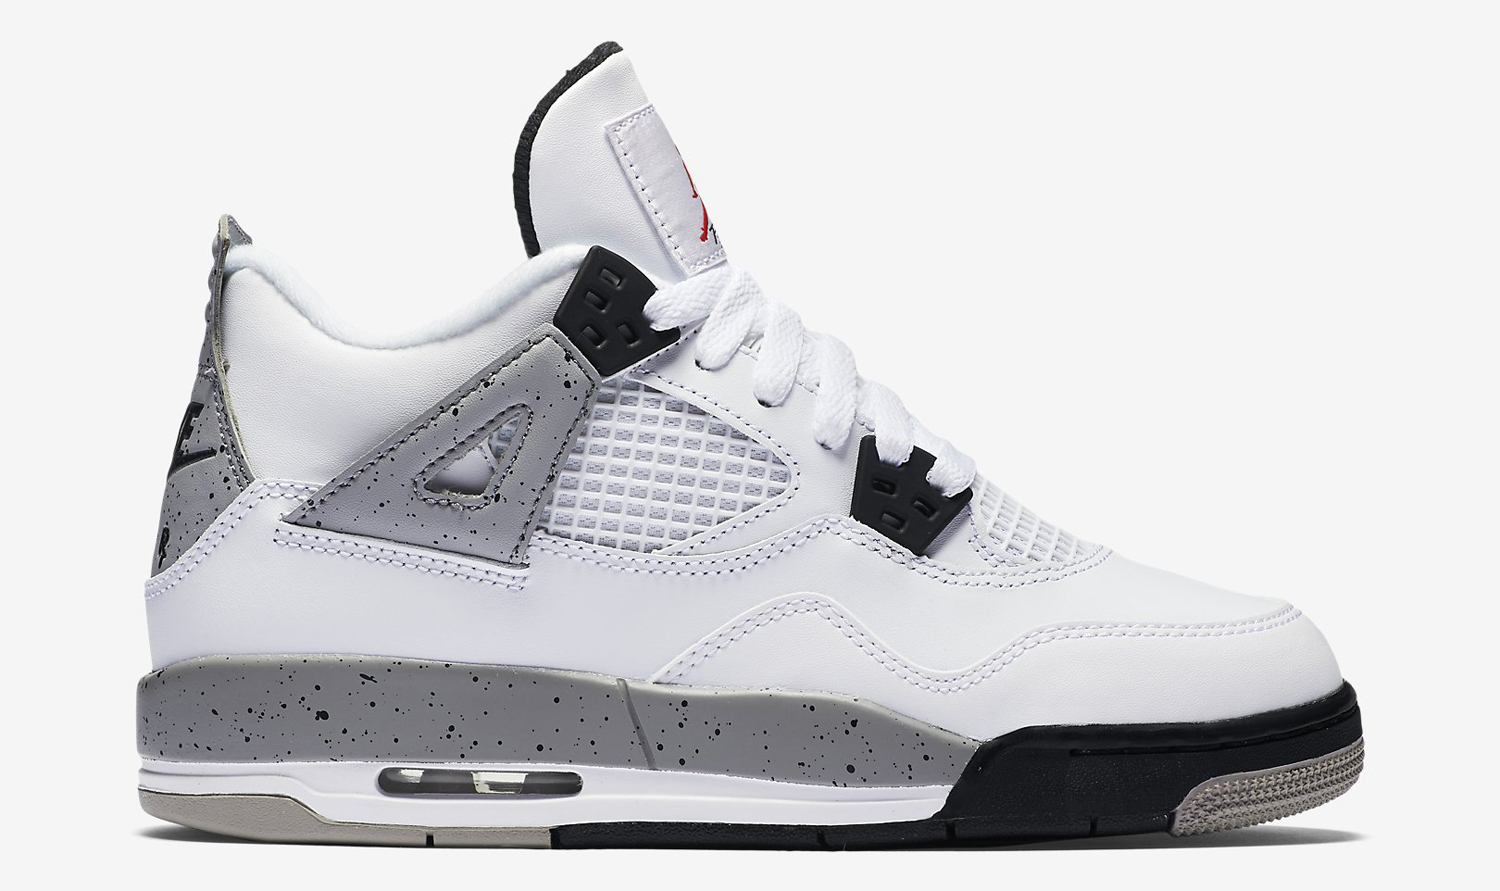 big sale d6676 82864 Here Are All the Kids 'White Cement' Air Jordan 4s Releasing ...